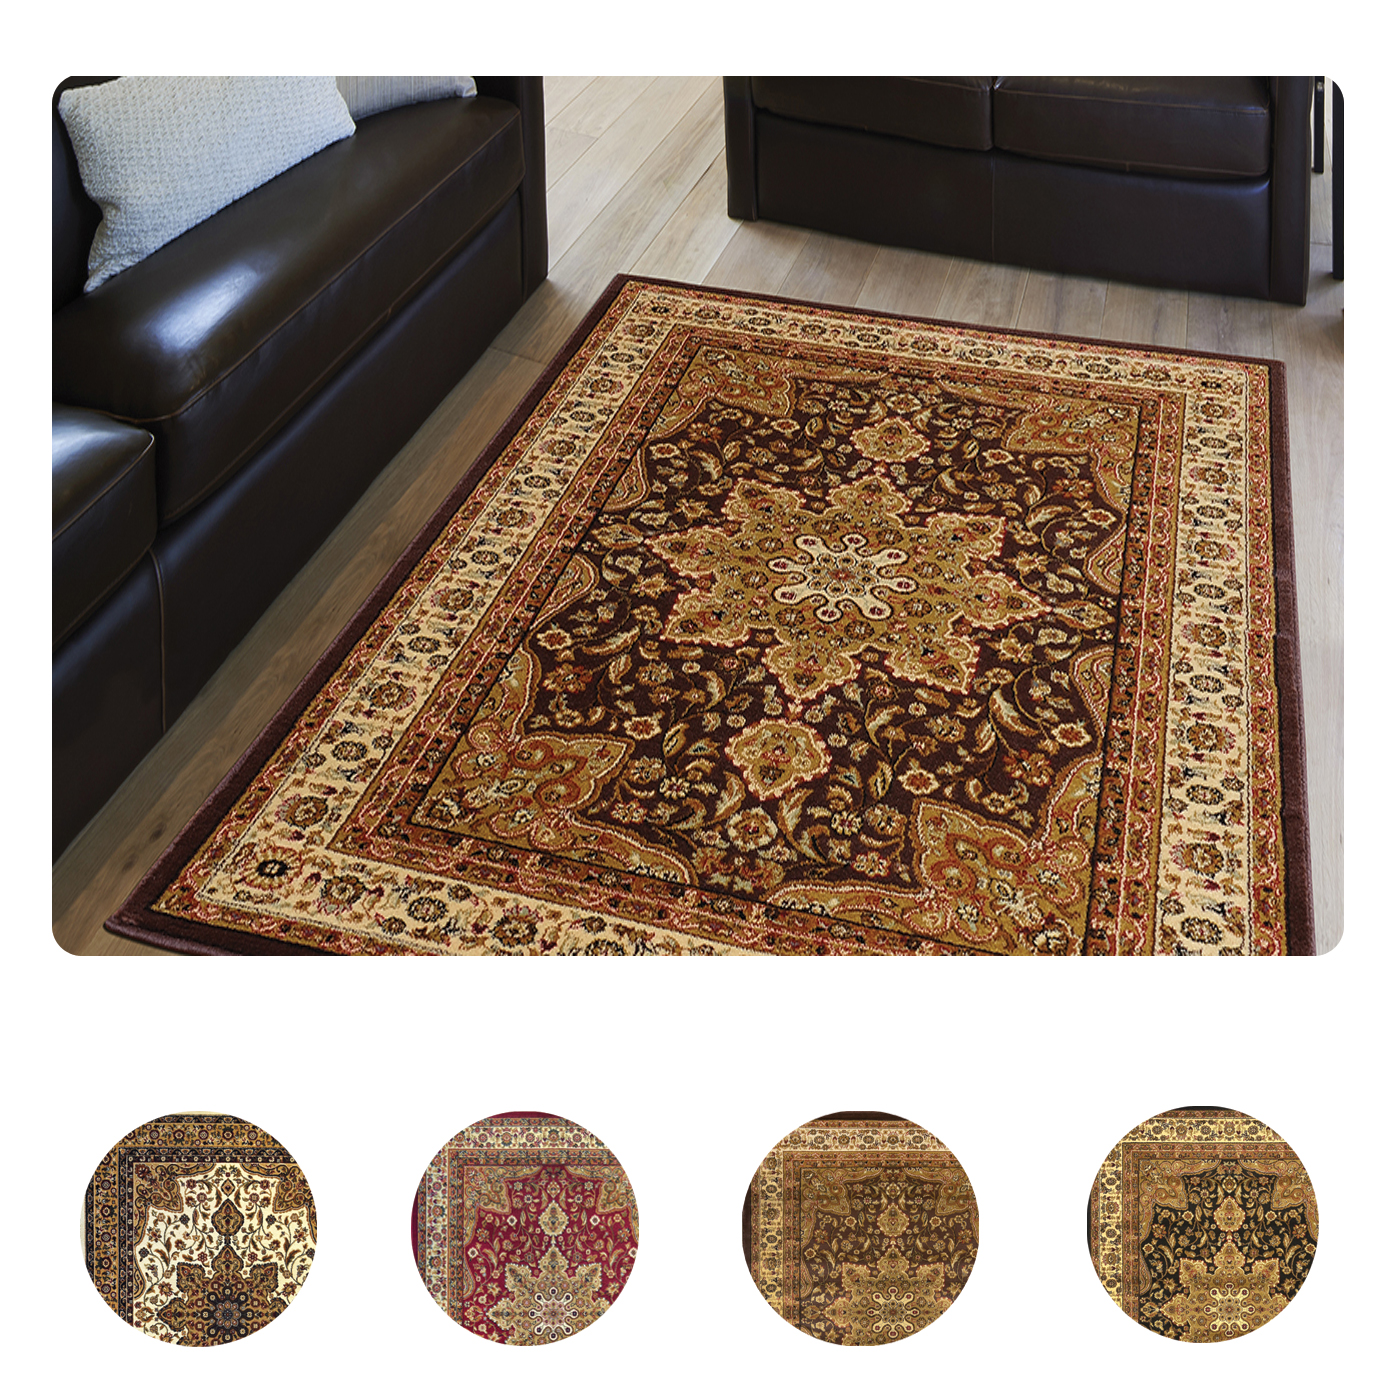 New Brand Devlin Persian Rug Handmade 100 Wool Area Rugs: Large Medallion 8 X 11 Persian Area Rug Border Carpet